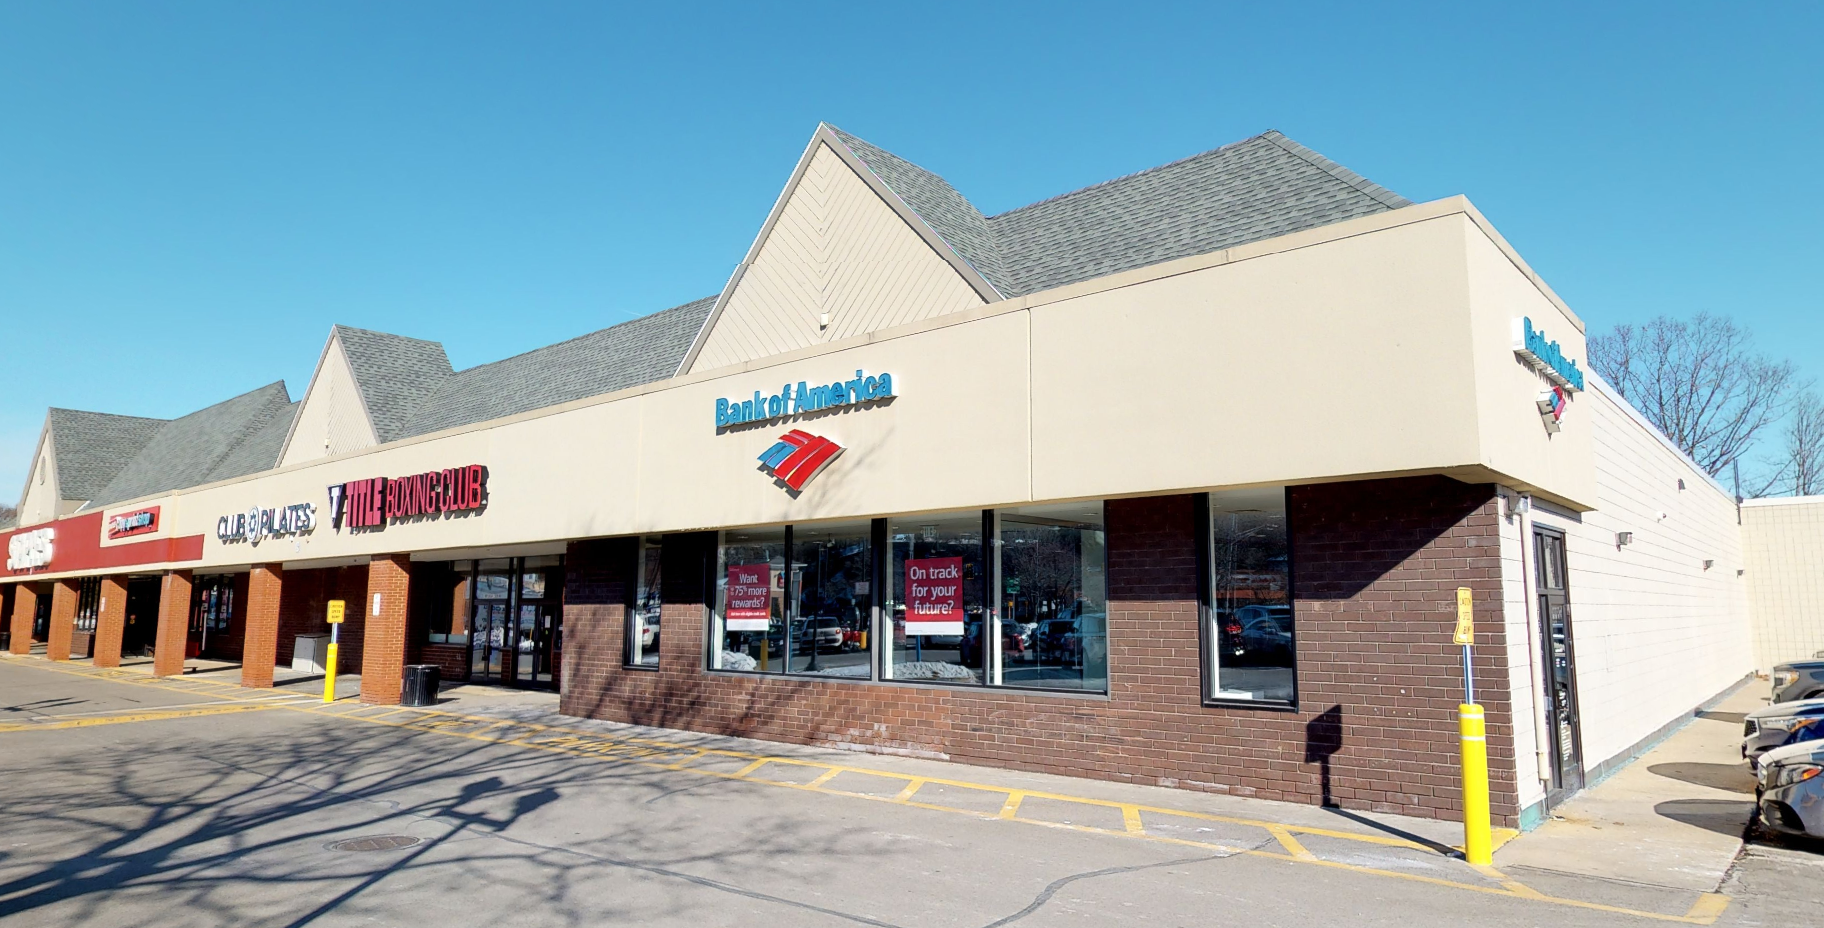 Bank of America financial center with walk-up ATM   21 Paradise Rd, Salem, MA 01970